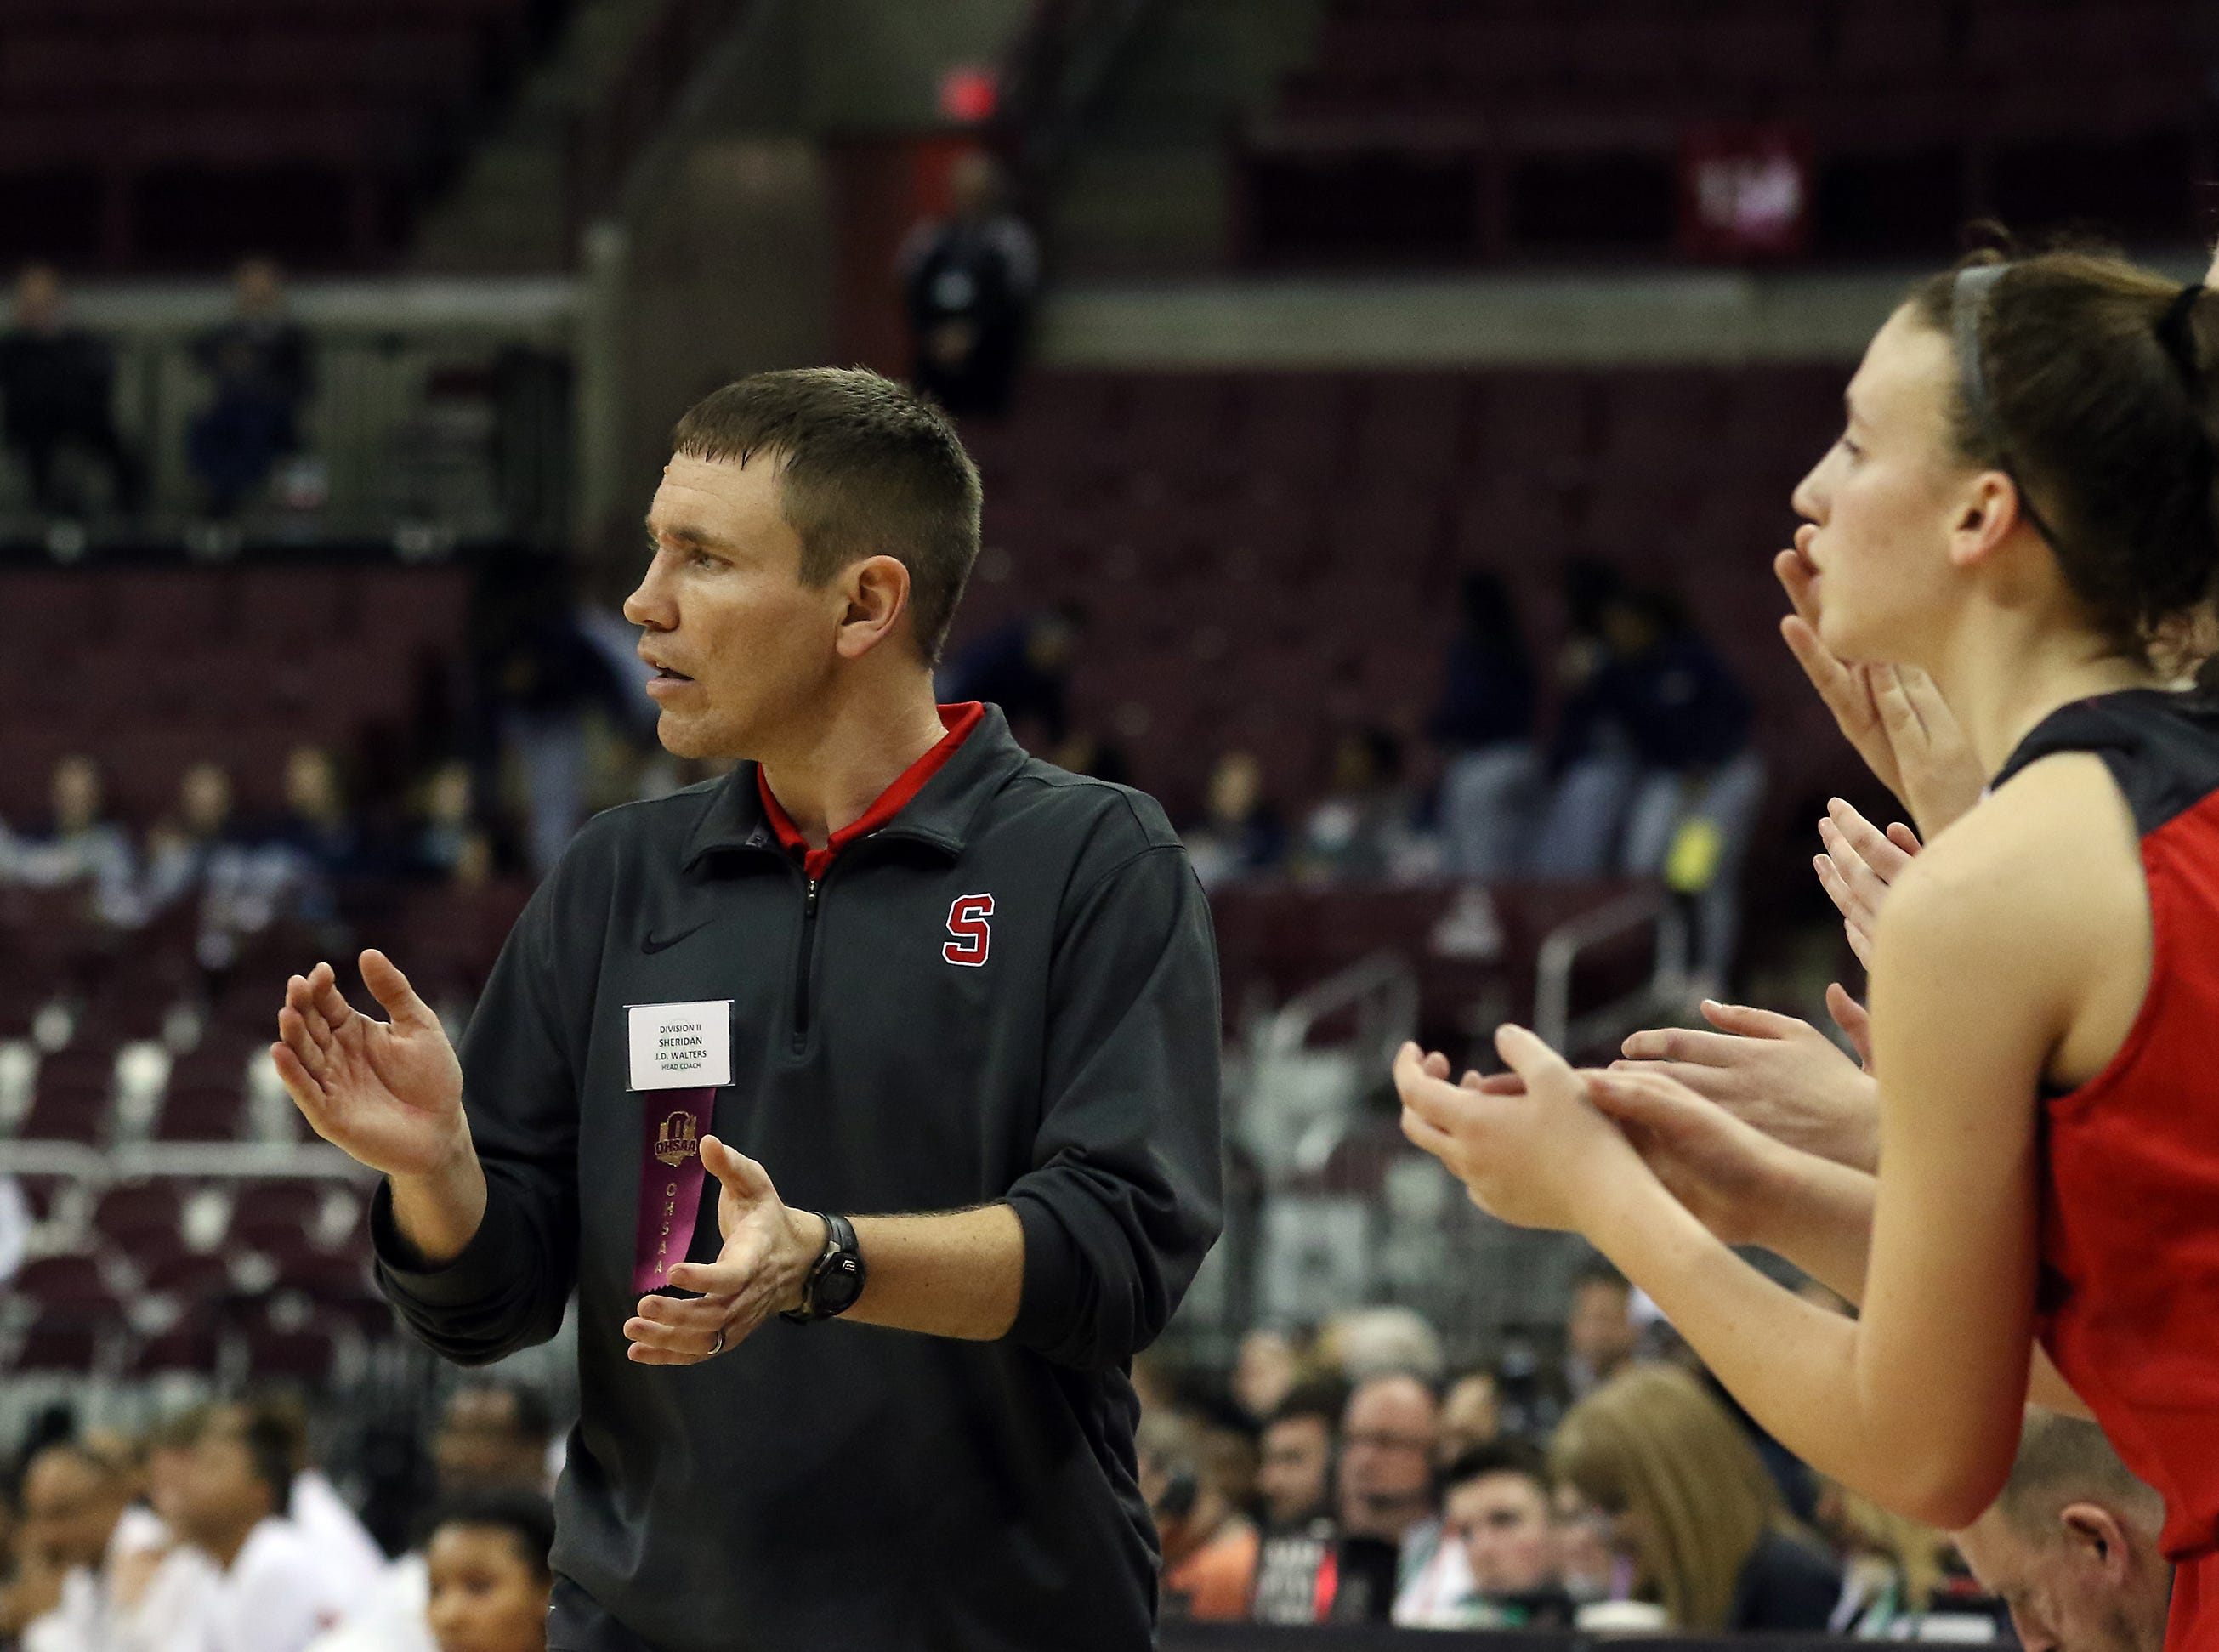 Sheridan coach J.D. Walters claps during the Division II state semis.